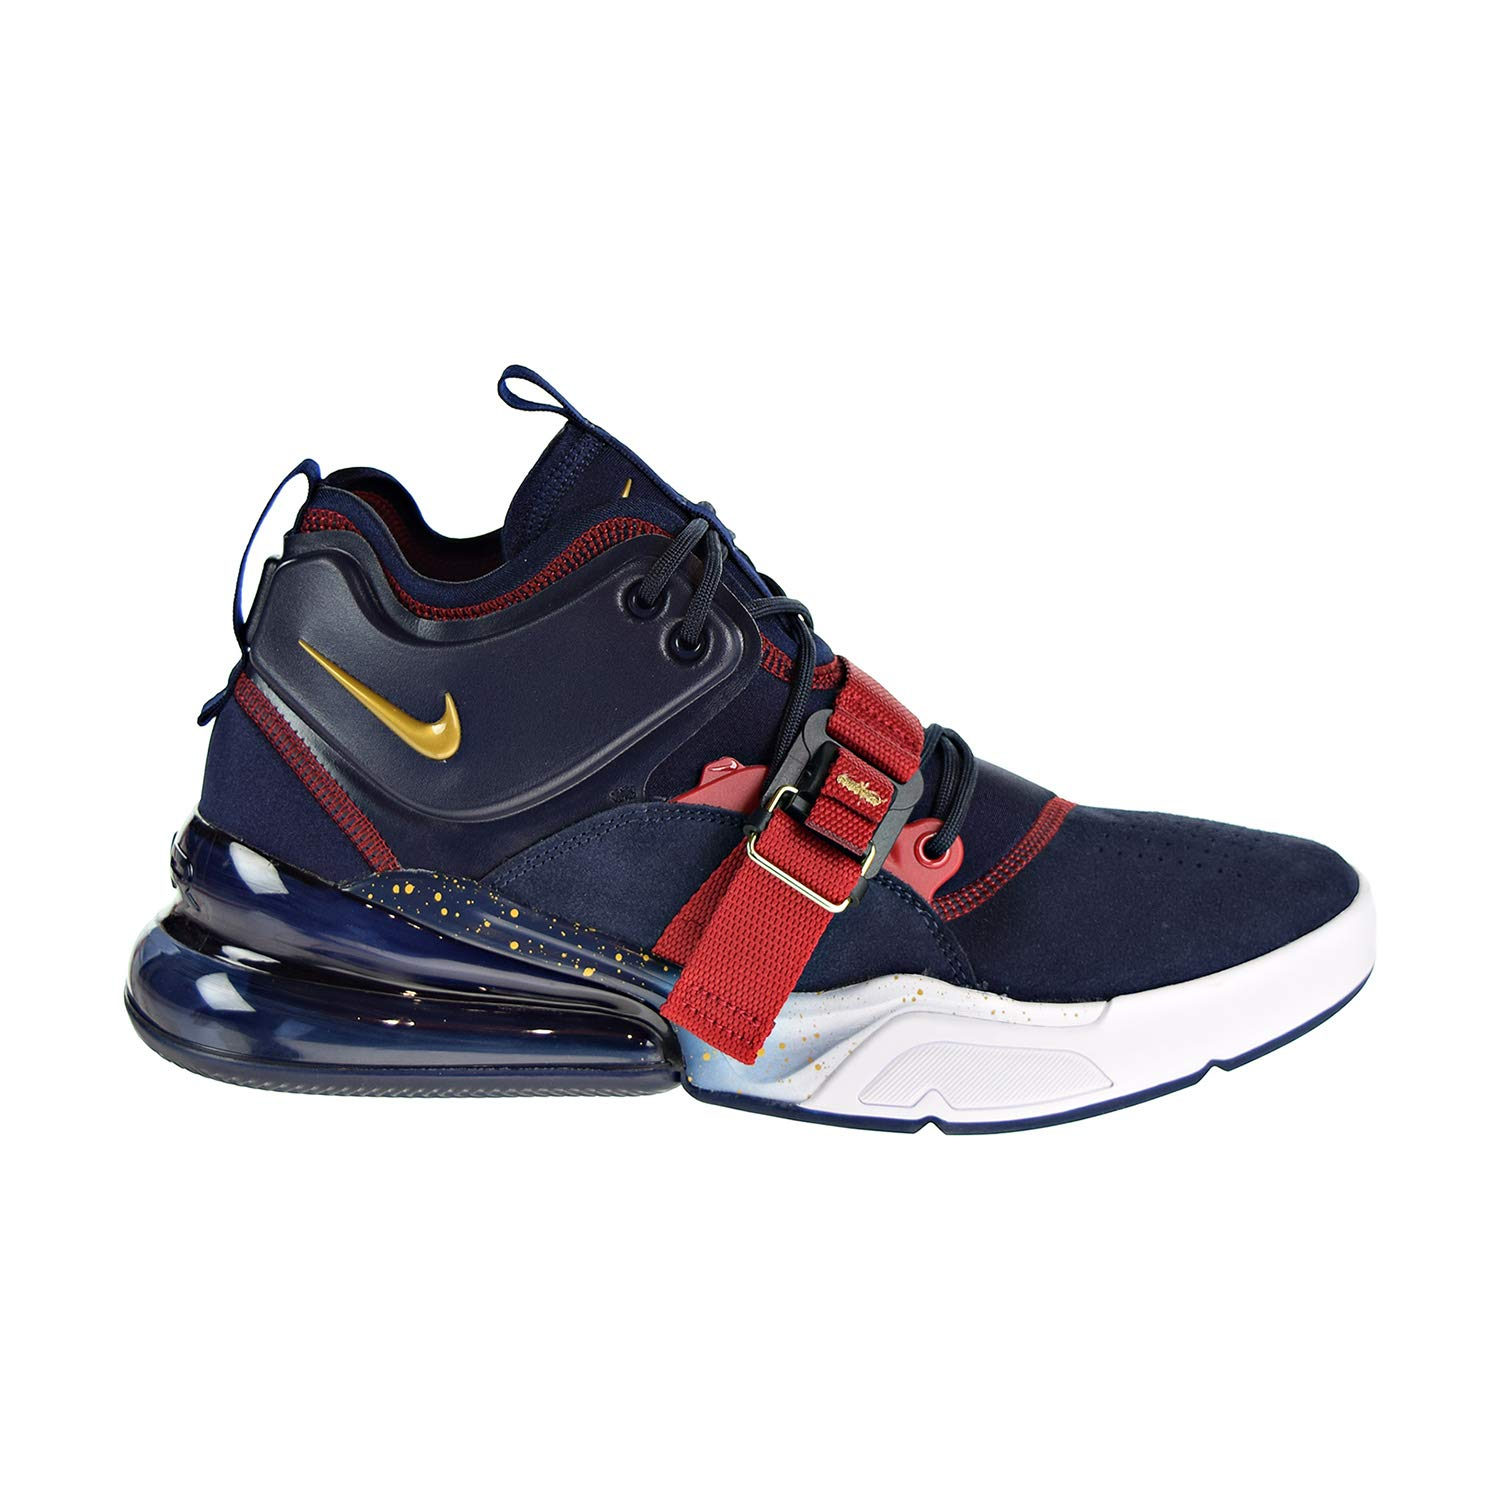 MultiCouleure (Obsidian Metallic or Gym rouge blanc 400) Nike Air Force 270, Chaussures de Fitness Homme 46 EU